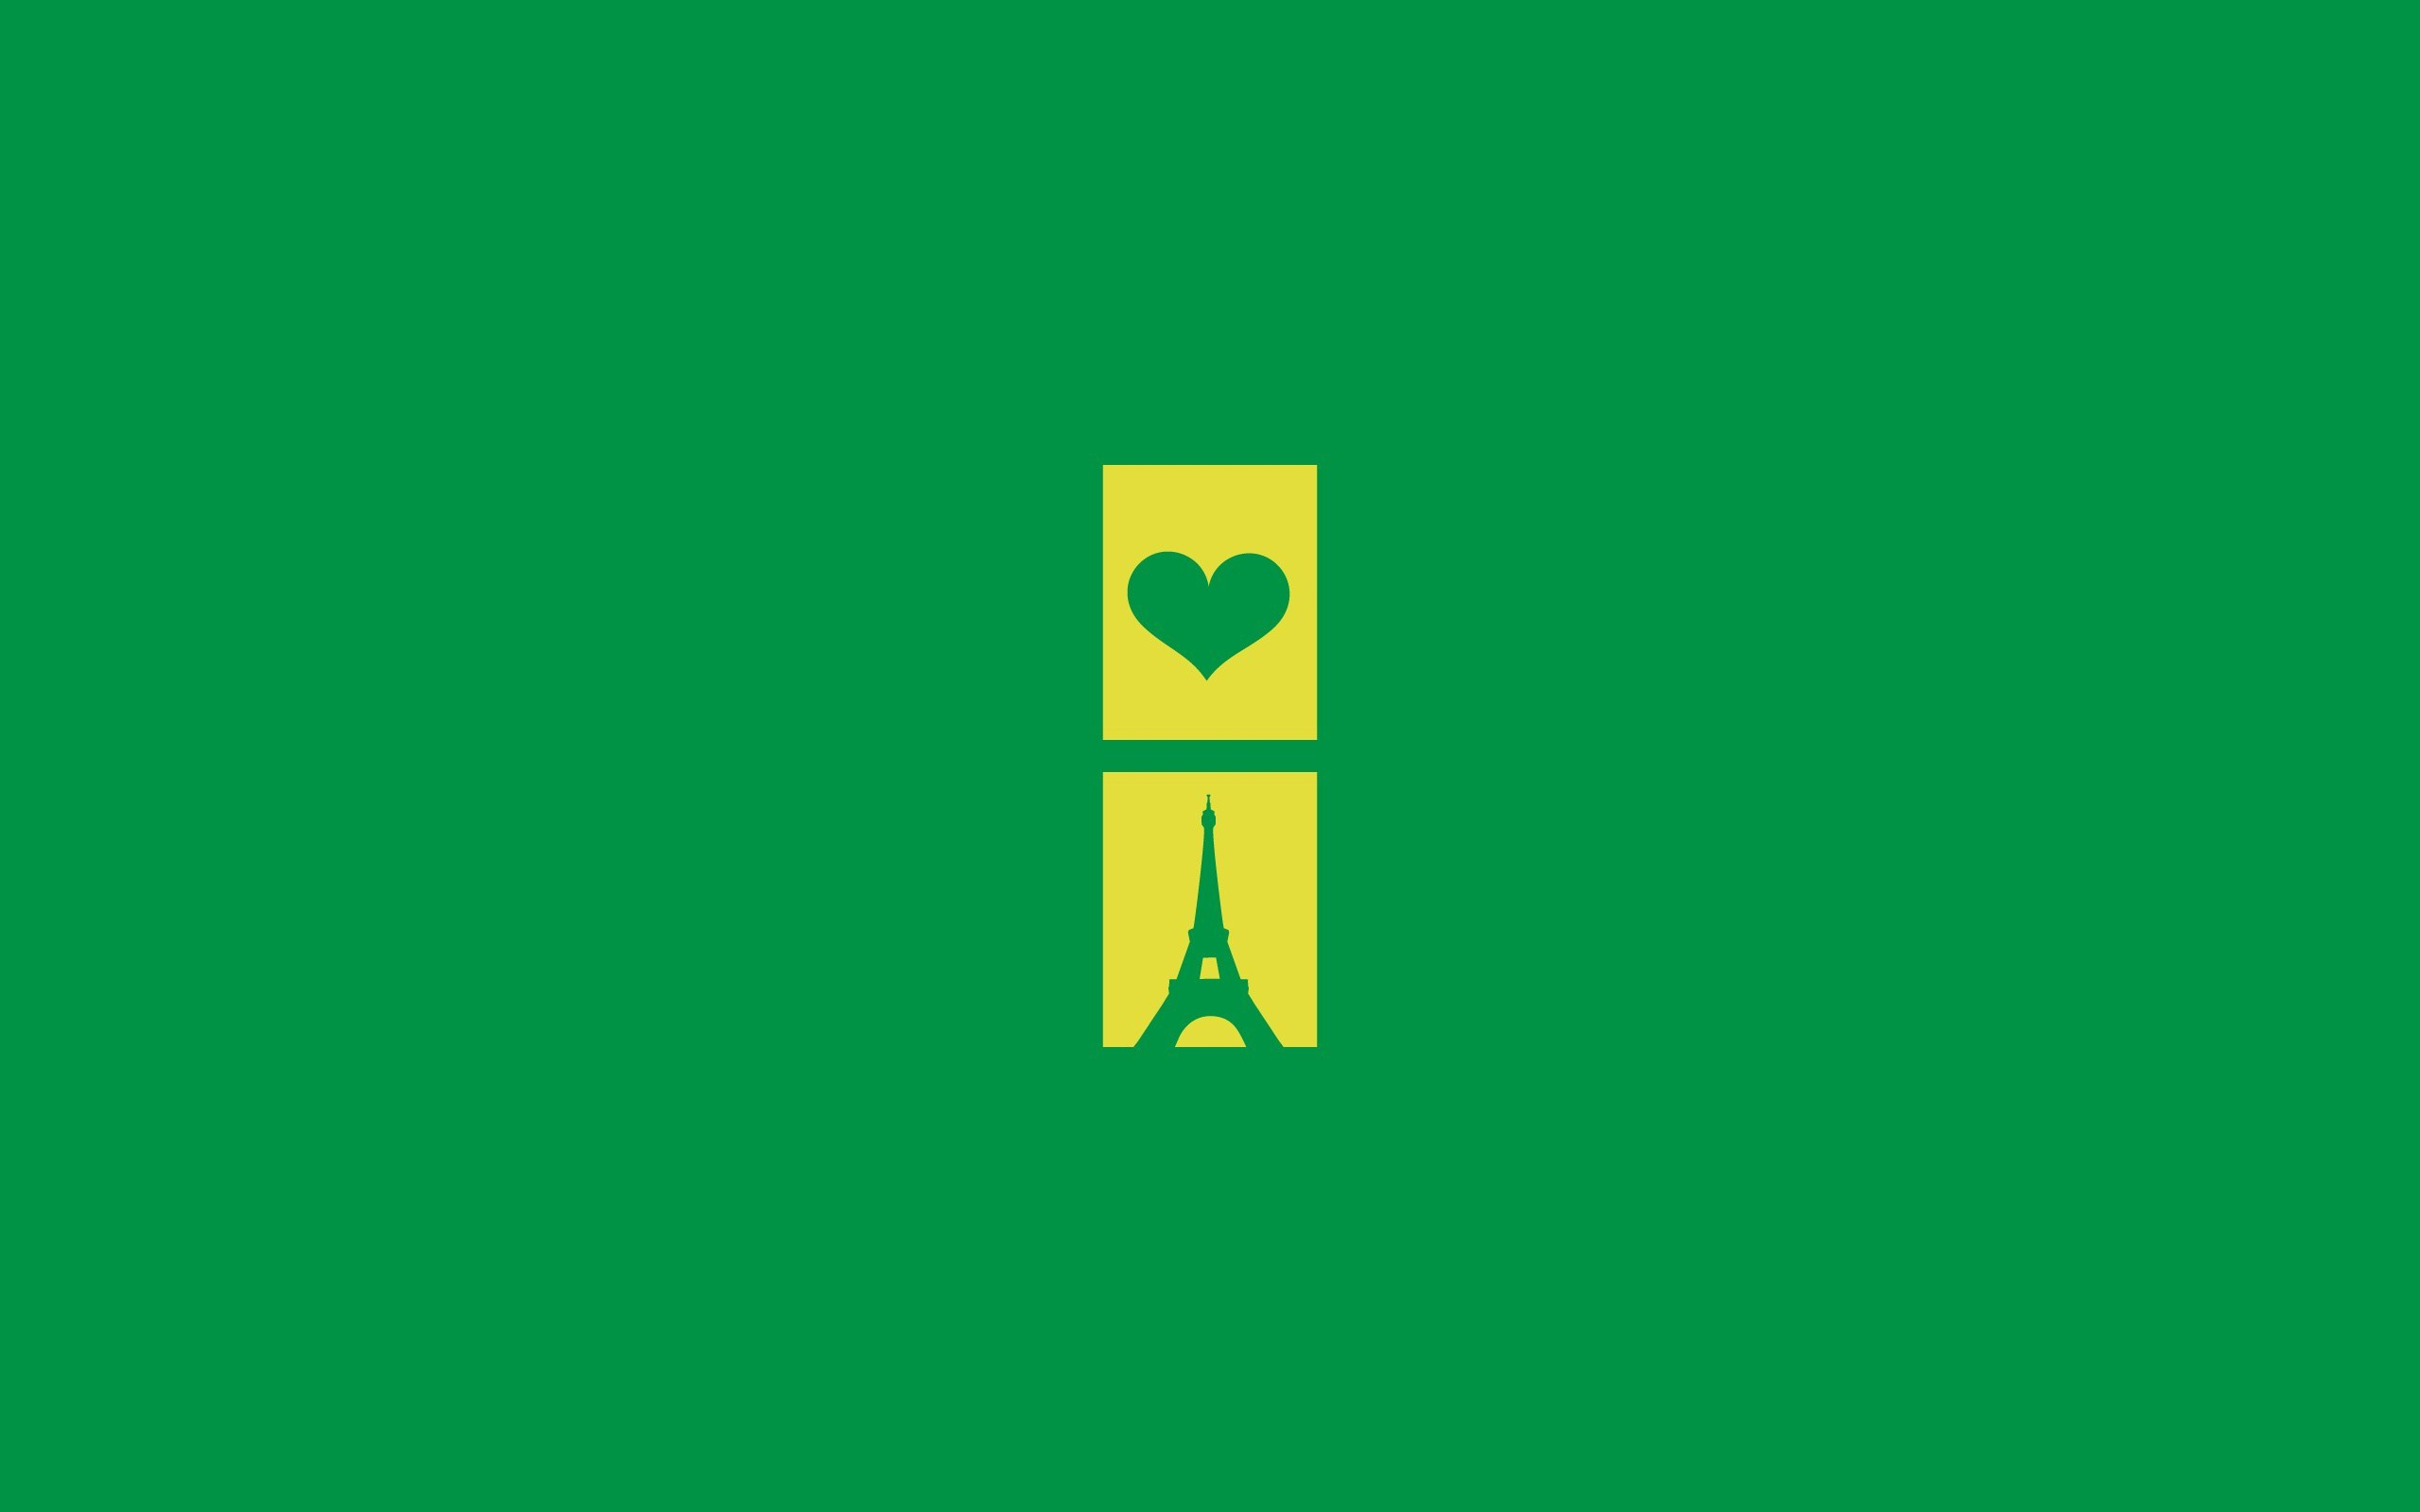 Heart Love Paris Eiffel Tower Creative